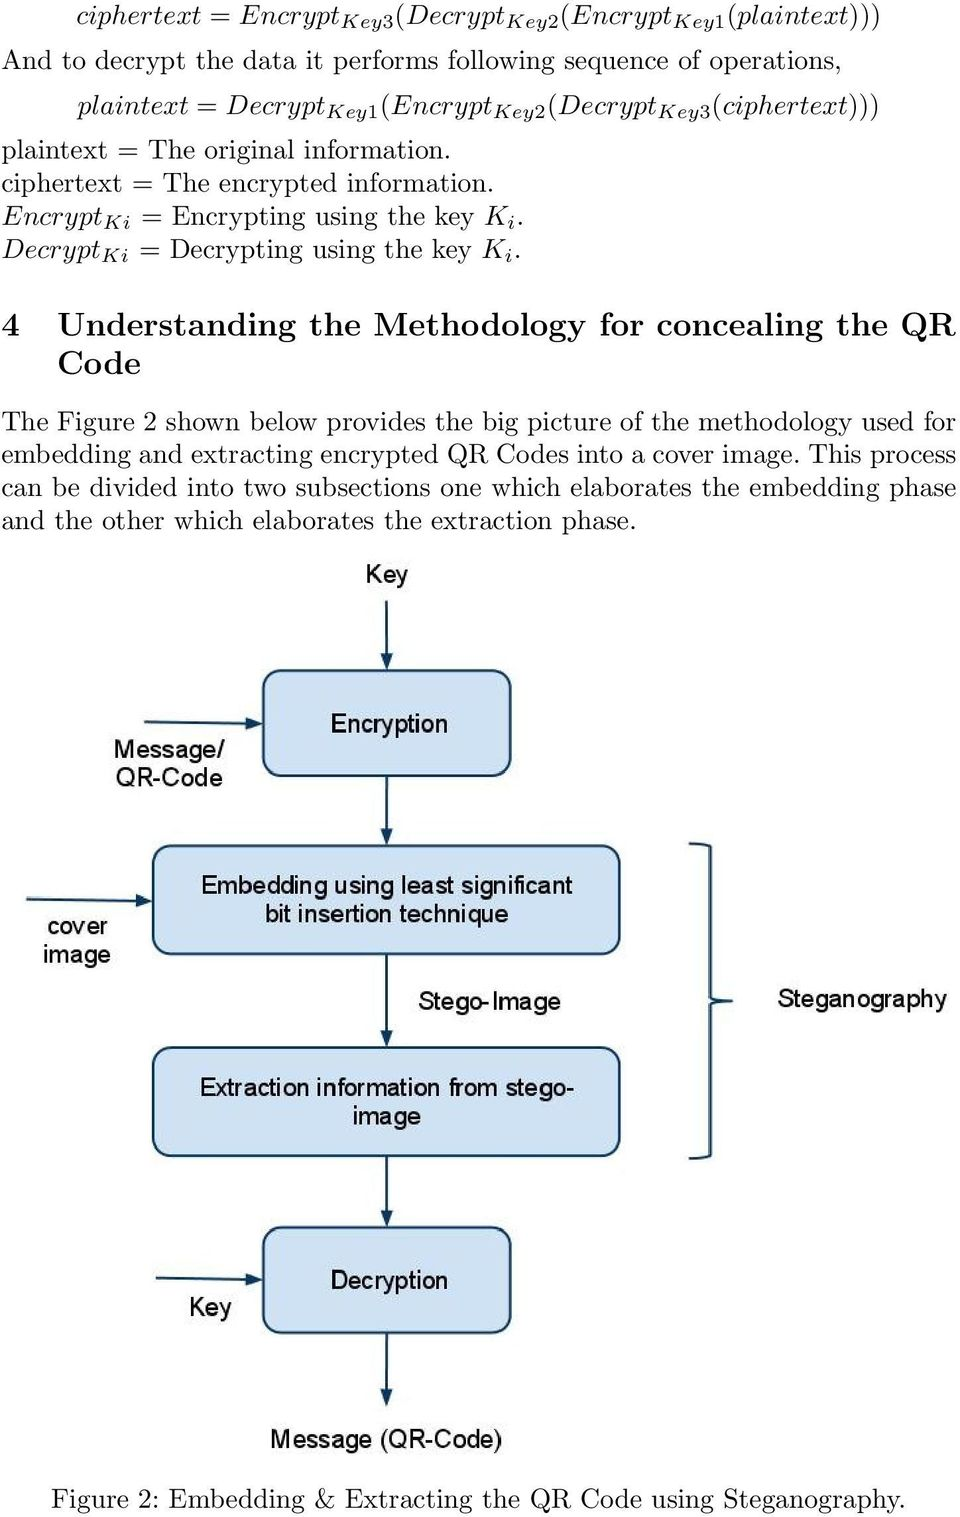 A Methodology to Conceal QR Codes for Security Applications - PDF